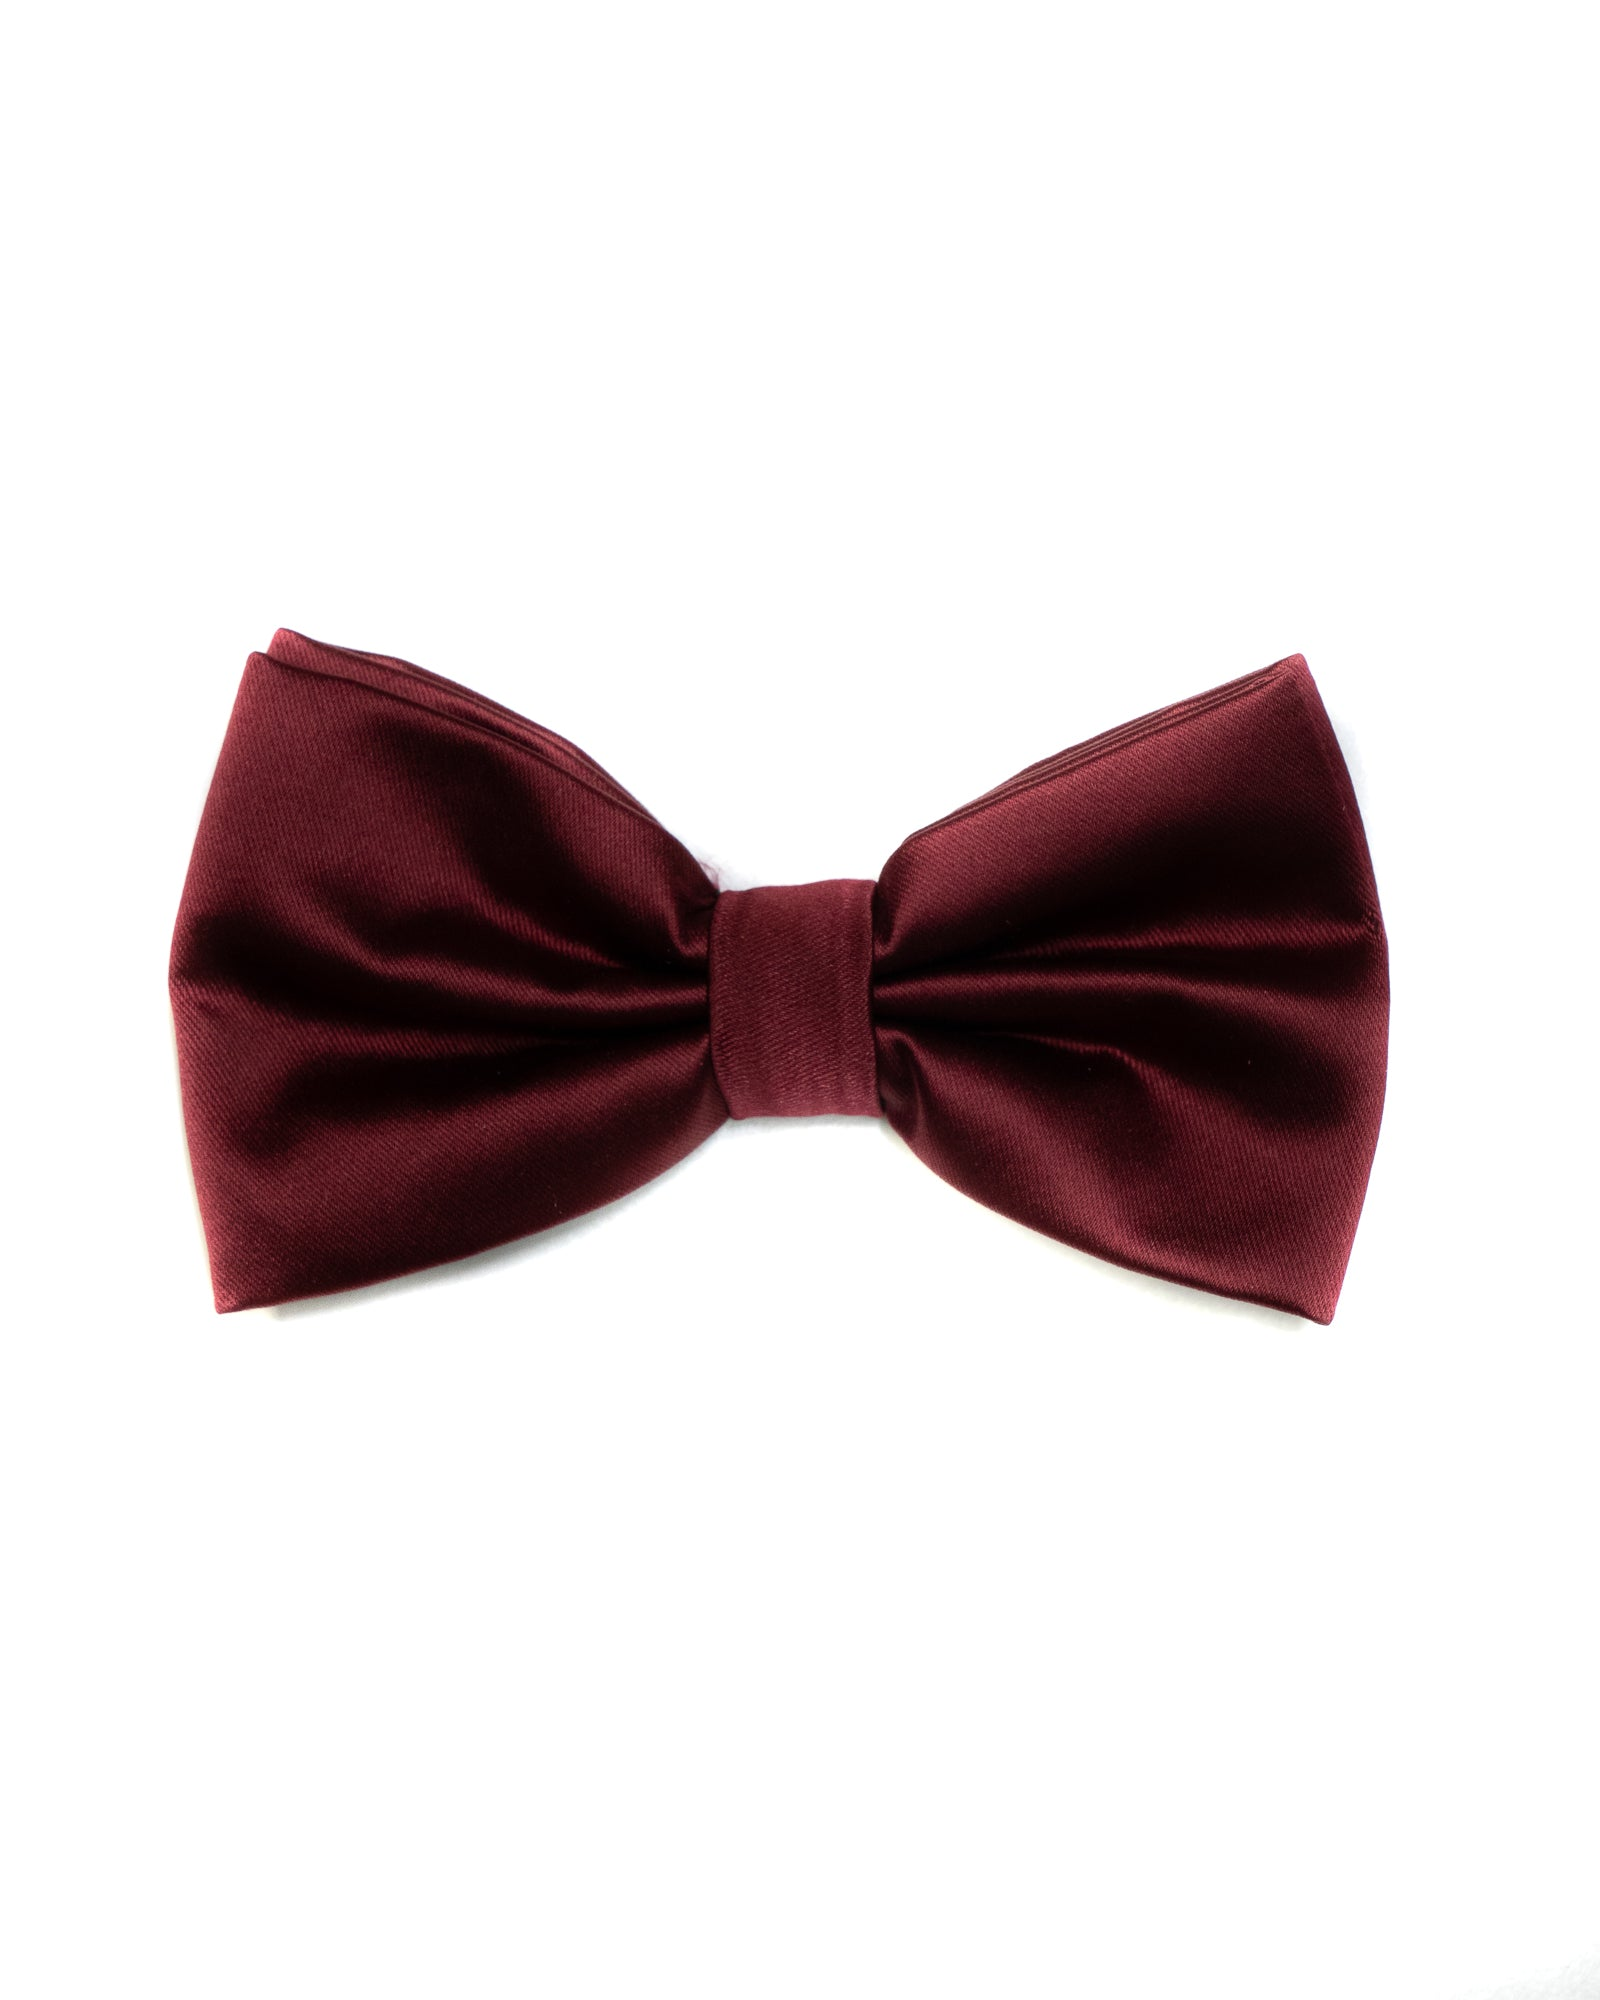 Solid Bow Tie and Matching Pocket Square Set - Rainwater's Men's Clothing and Tuxedo Rental